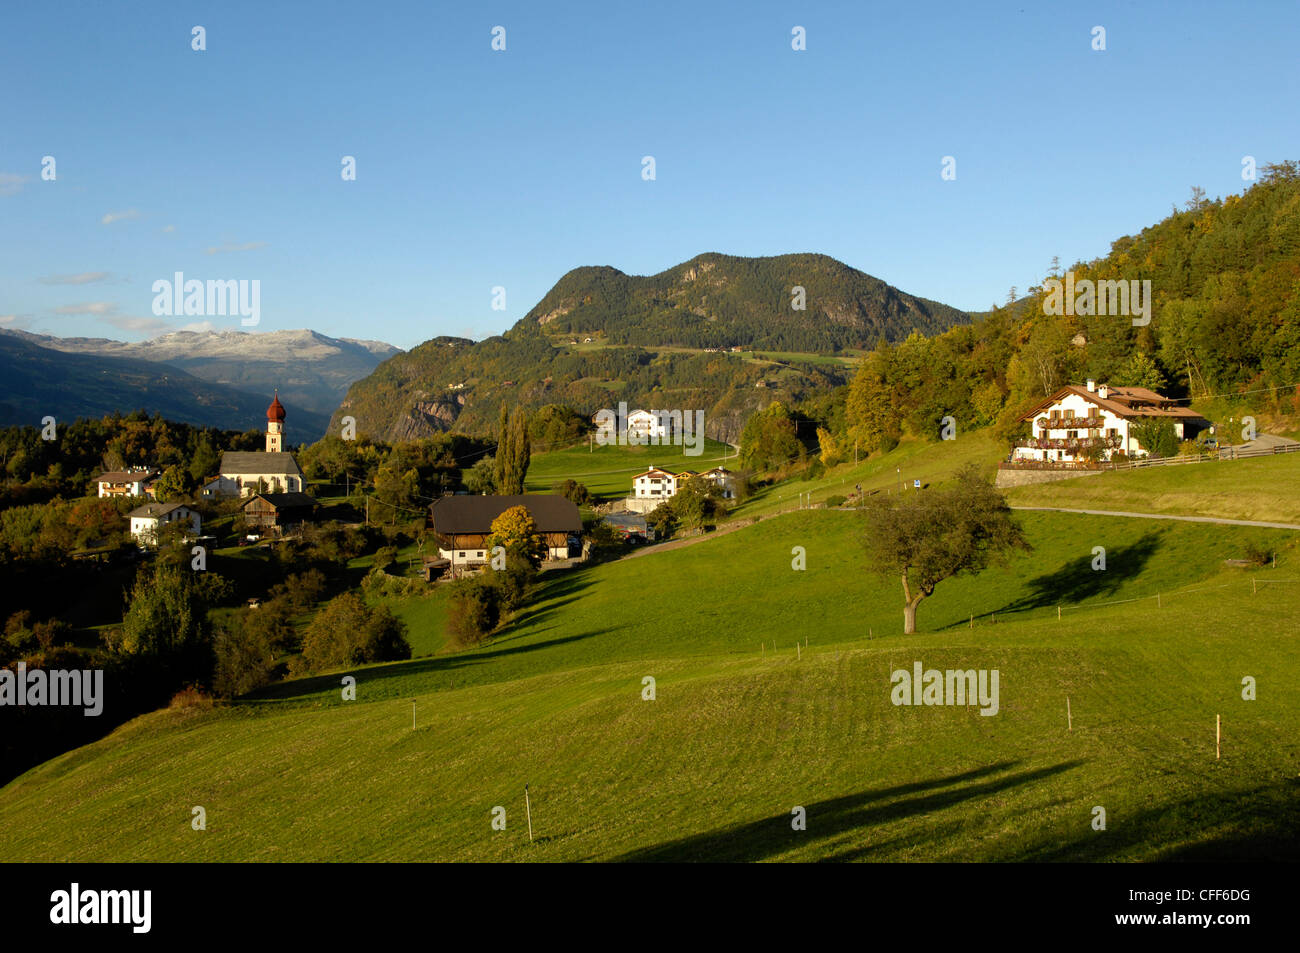 Farmhouses at Villanderer Alp in the sunlight, Kastelruth, Valle Isarco, South Tyrol, Italy, Europe - Stock Image